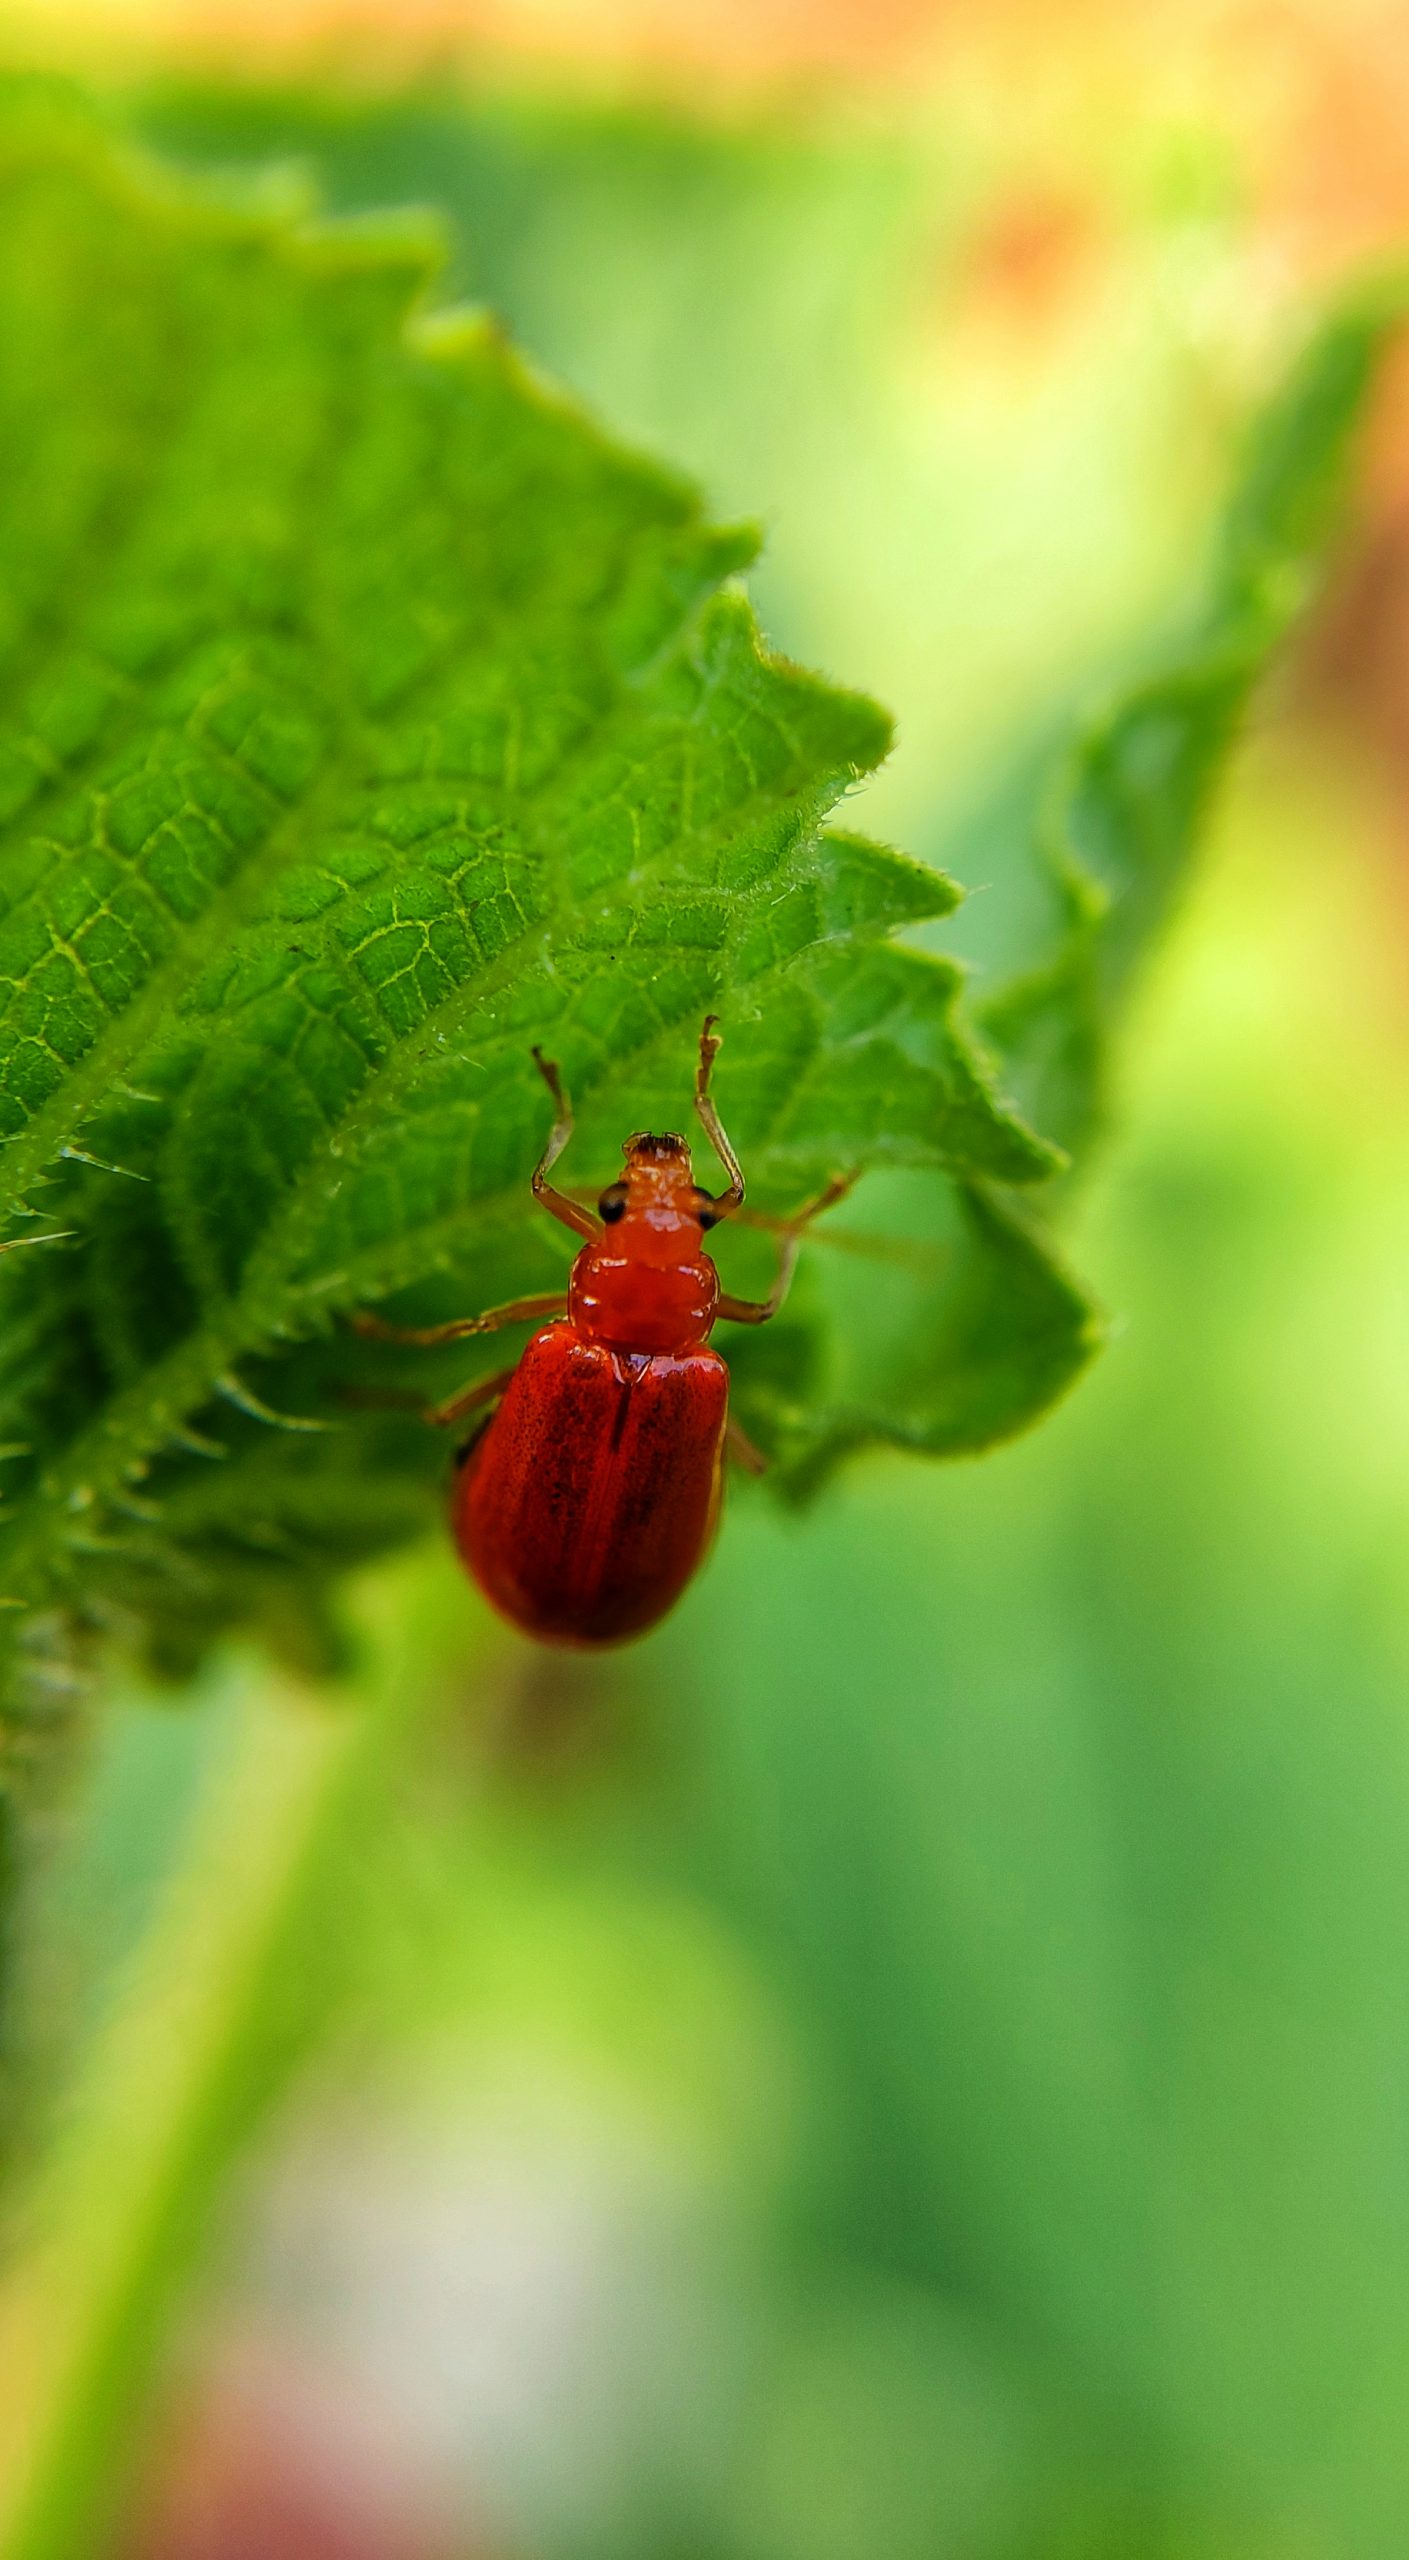 Red Bug on the plant leaf